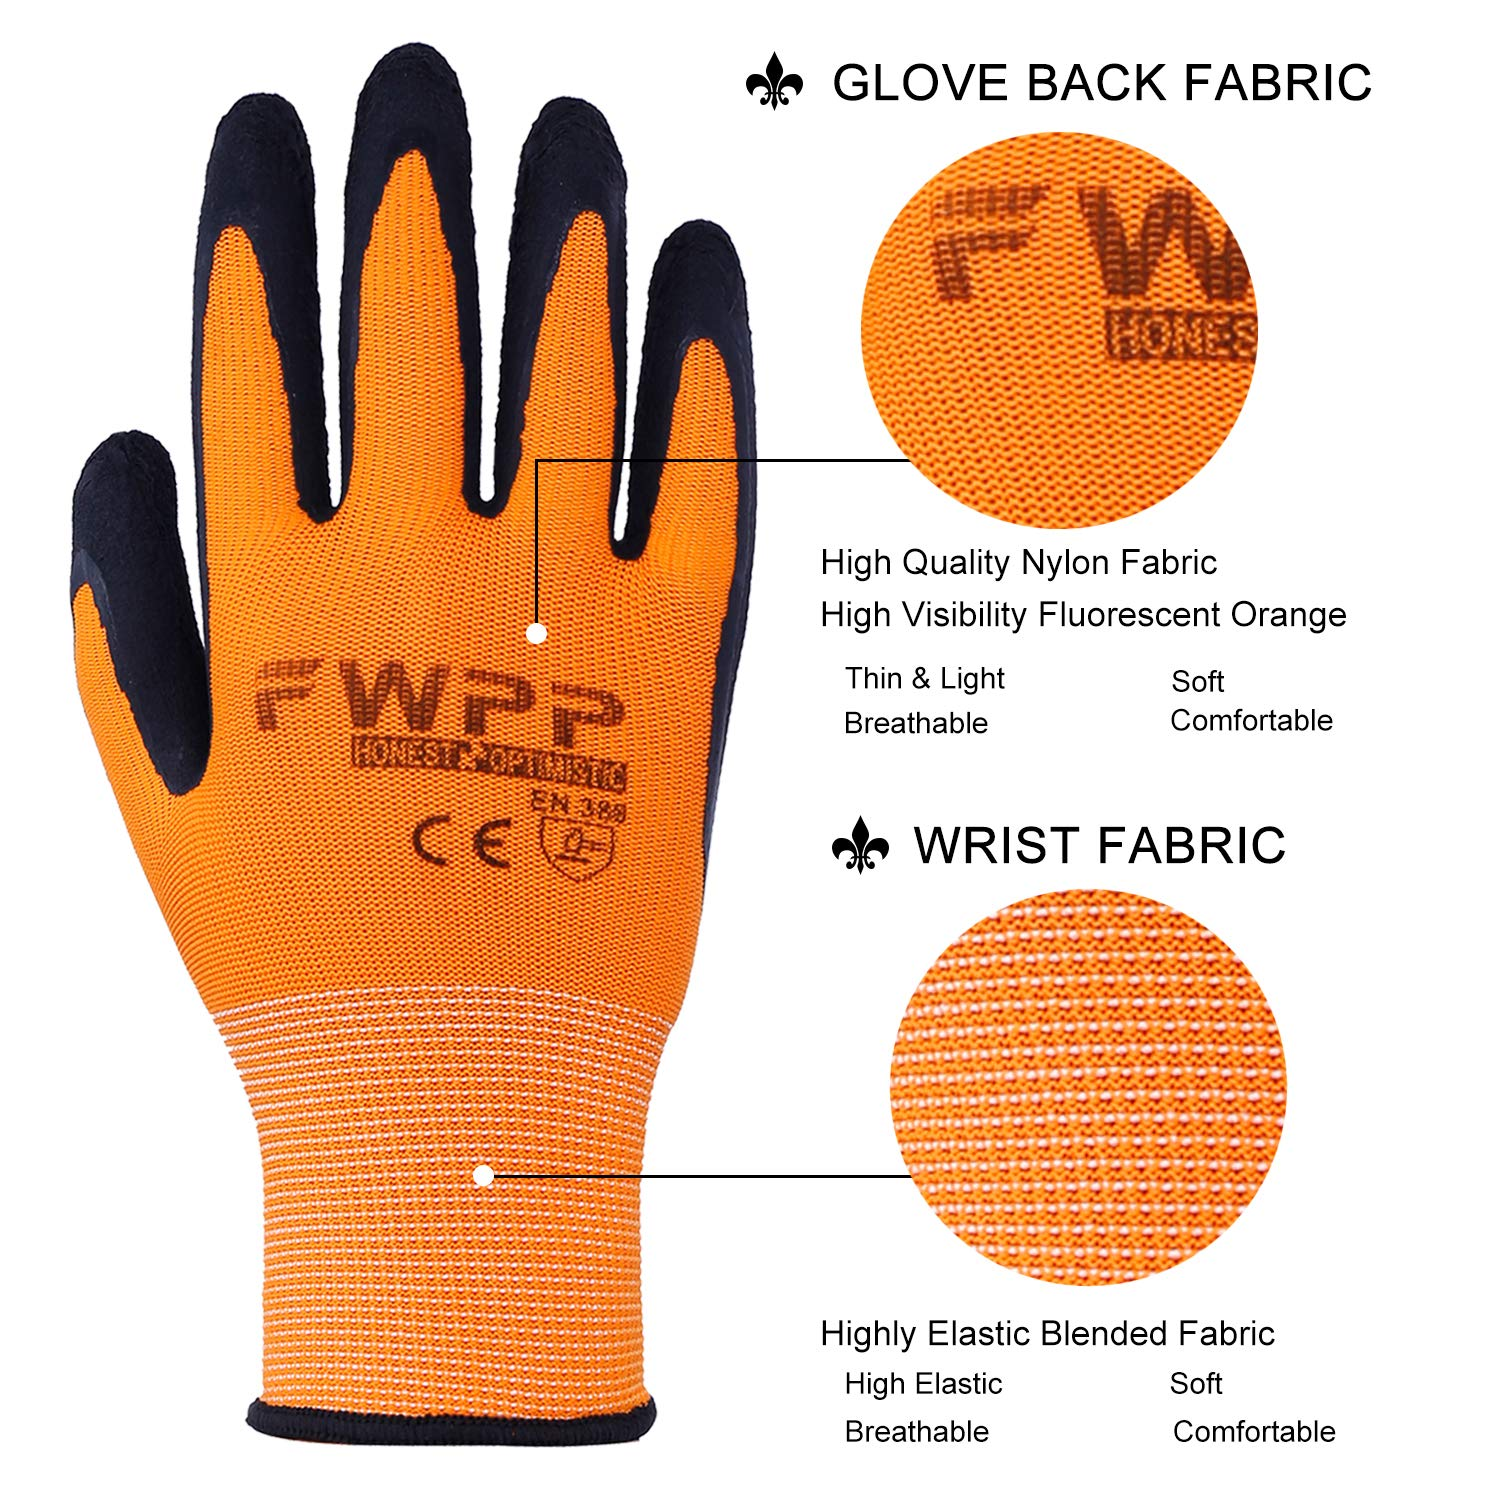 FWPP High Visibility Nylon Latex Foam Coated Work Gloves,Breathable Soft Wearproof Non-slip Comfortable Safety Protective Glove Pack of 12Pairs Large Fluorescence Orange by FWPP (Image #2)